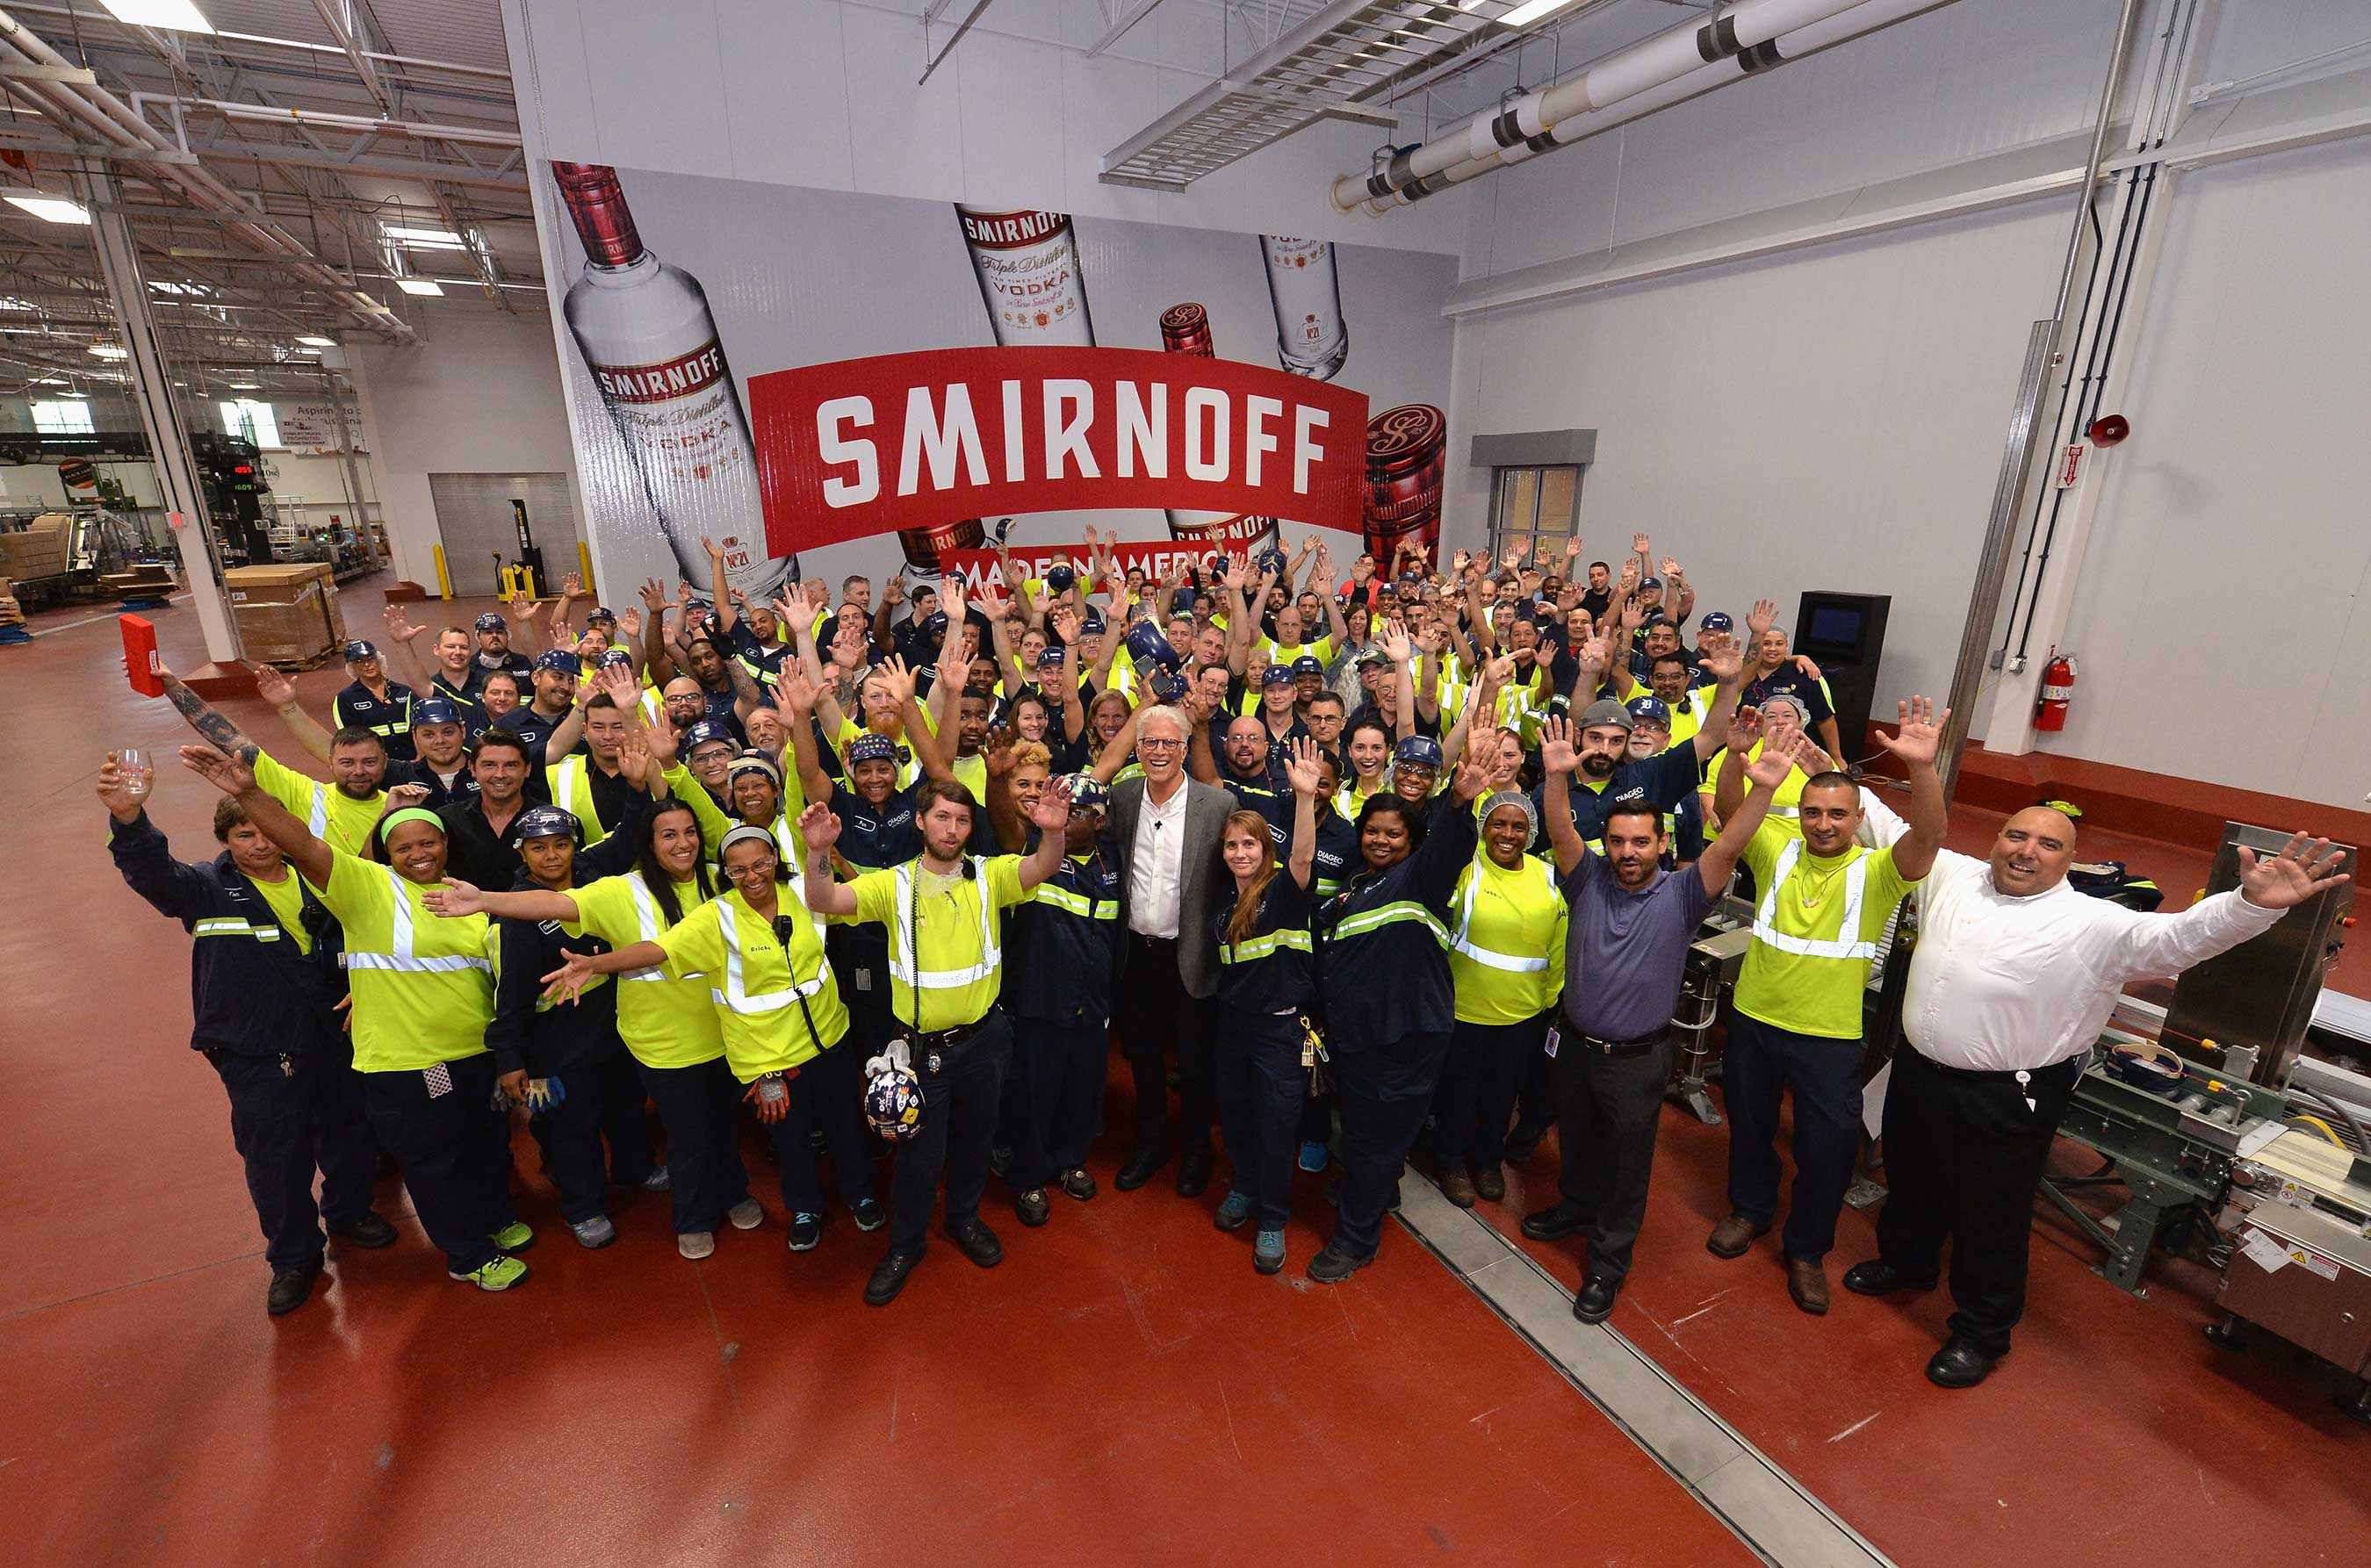 Ted Danson Heads To The Diageo Facility in Plainfield, Illinois To Meet the Hard-working People Behind SMIRNOFF, Americas Most-Awarded Vodka, on October 4, 2017